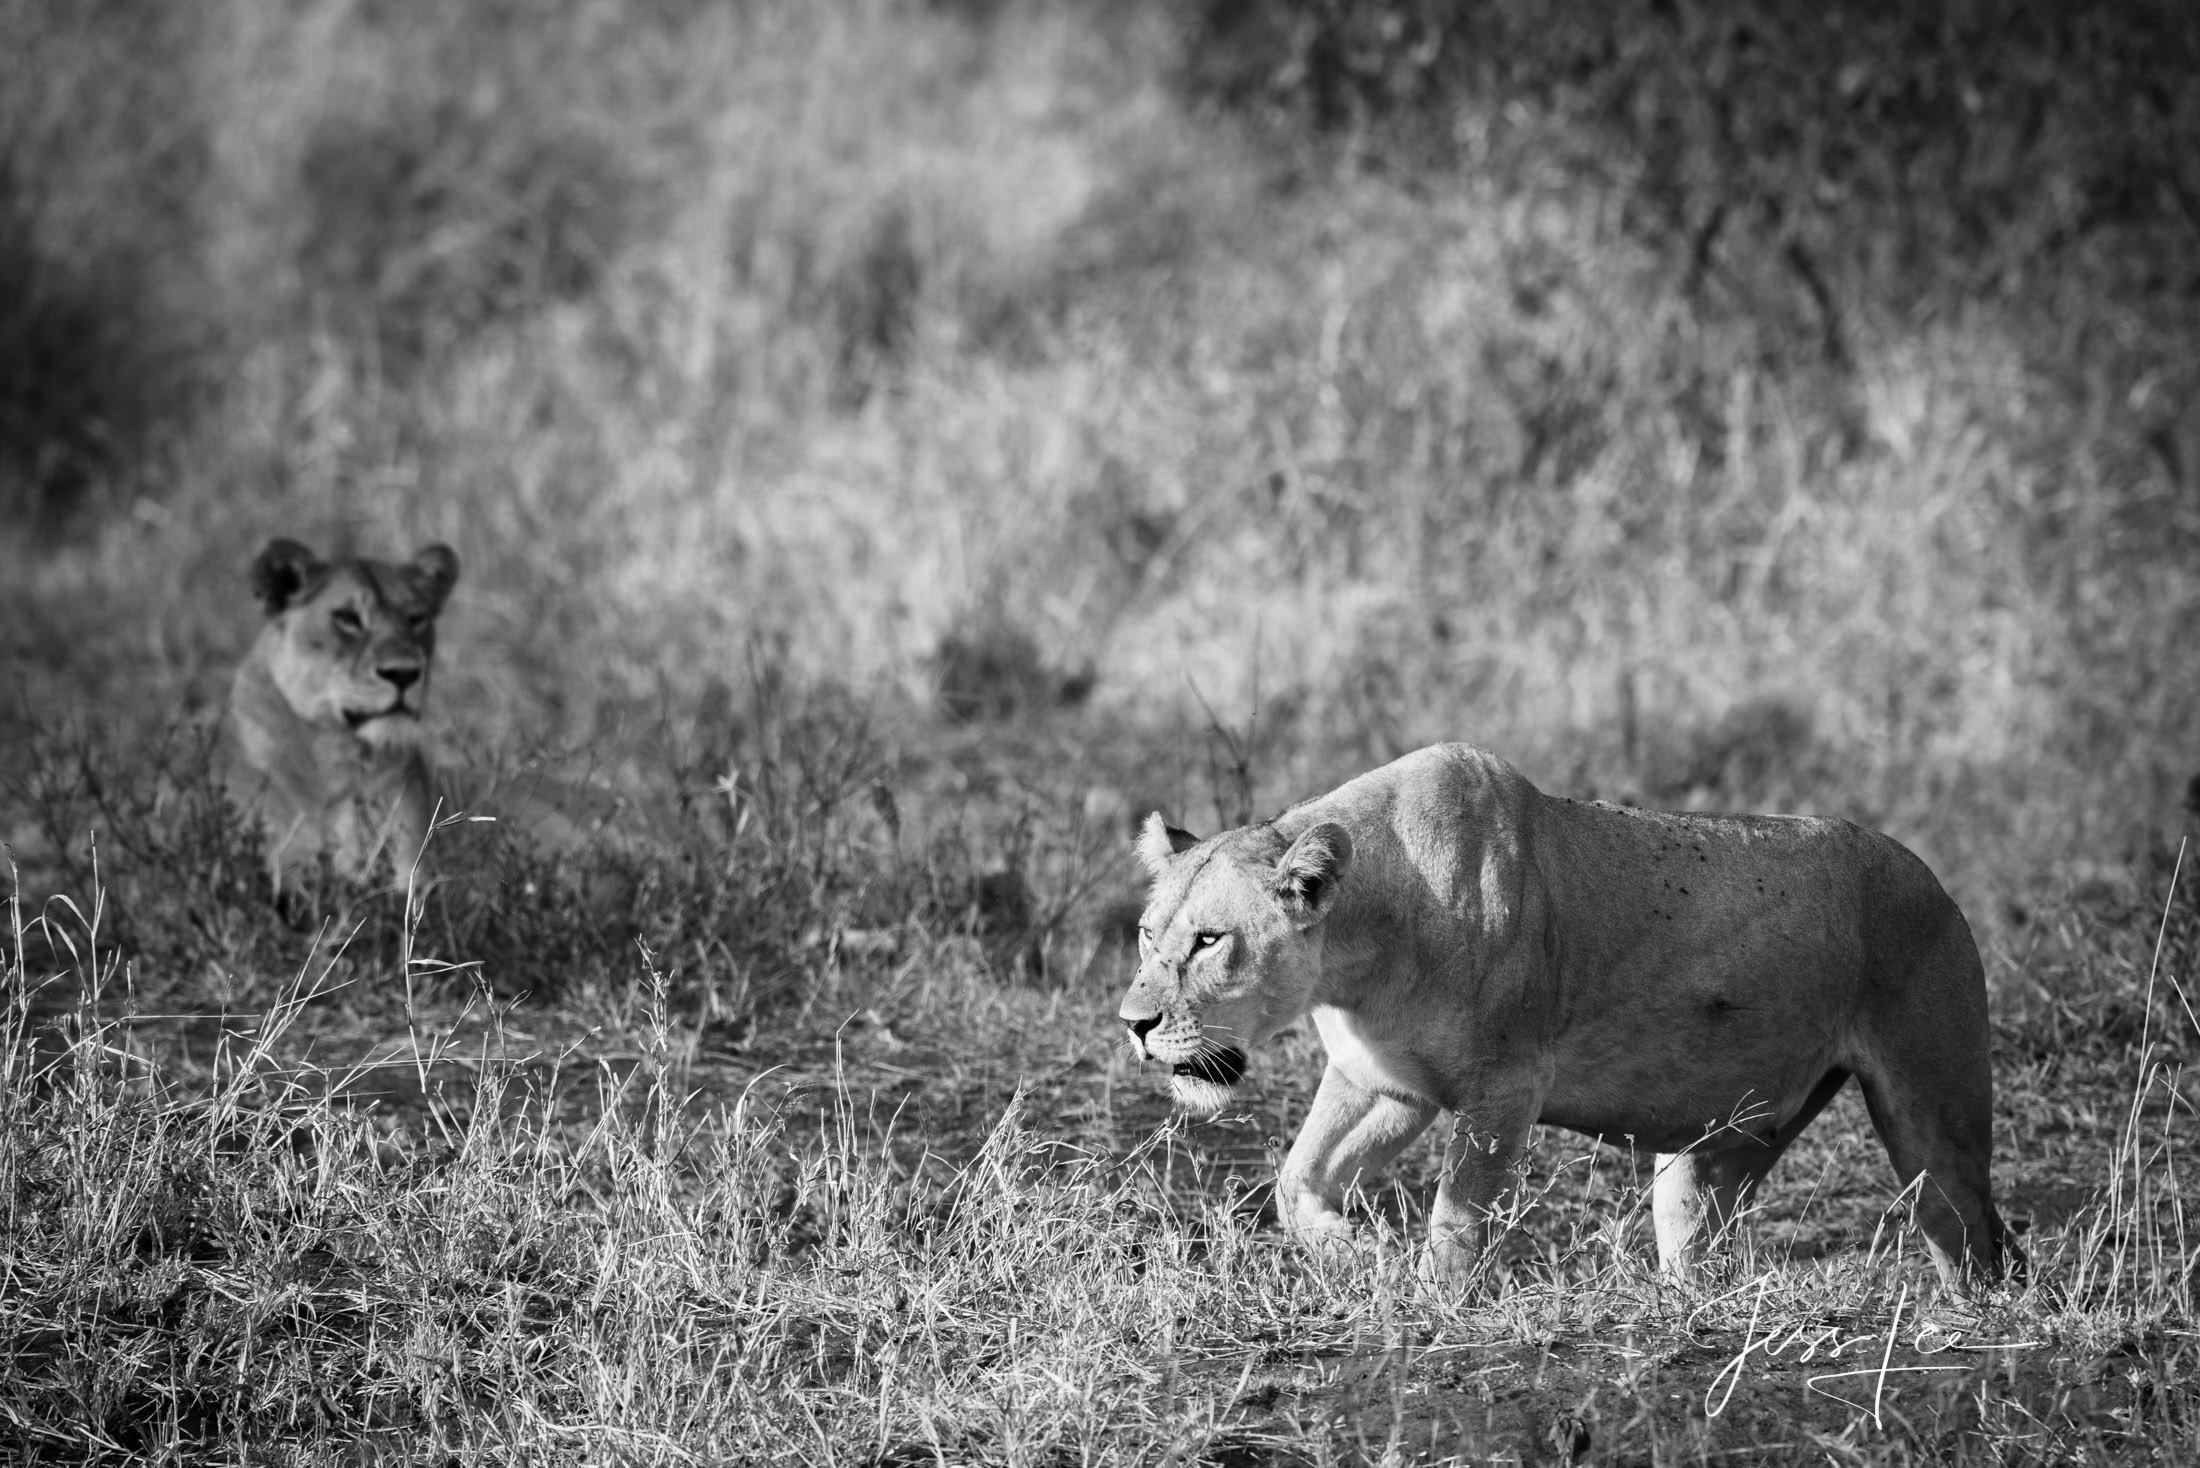 Black and White photo of African Lion Hunting